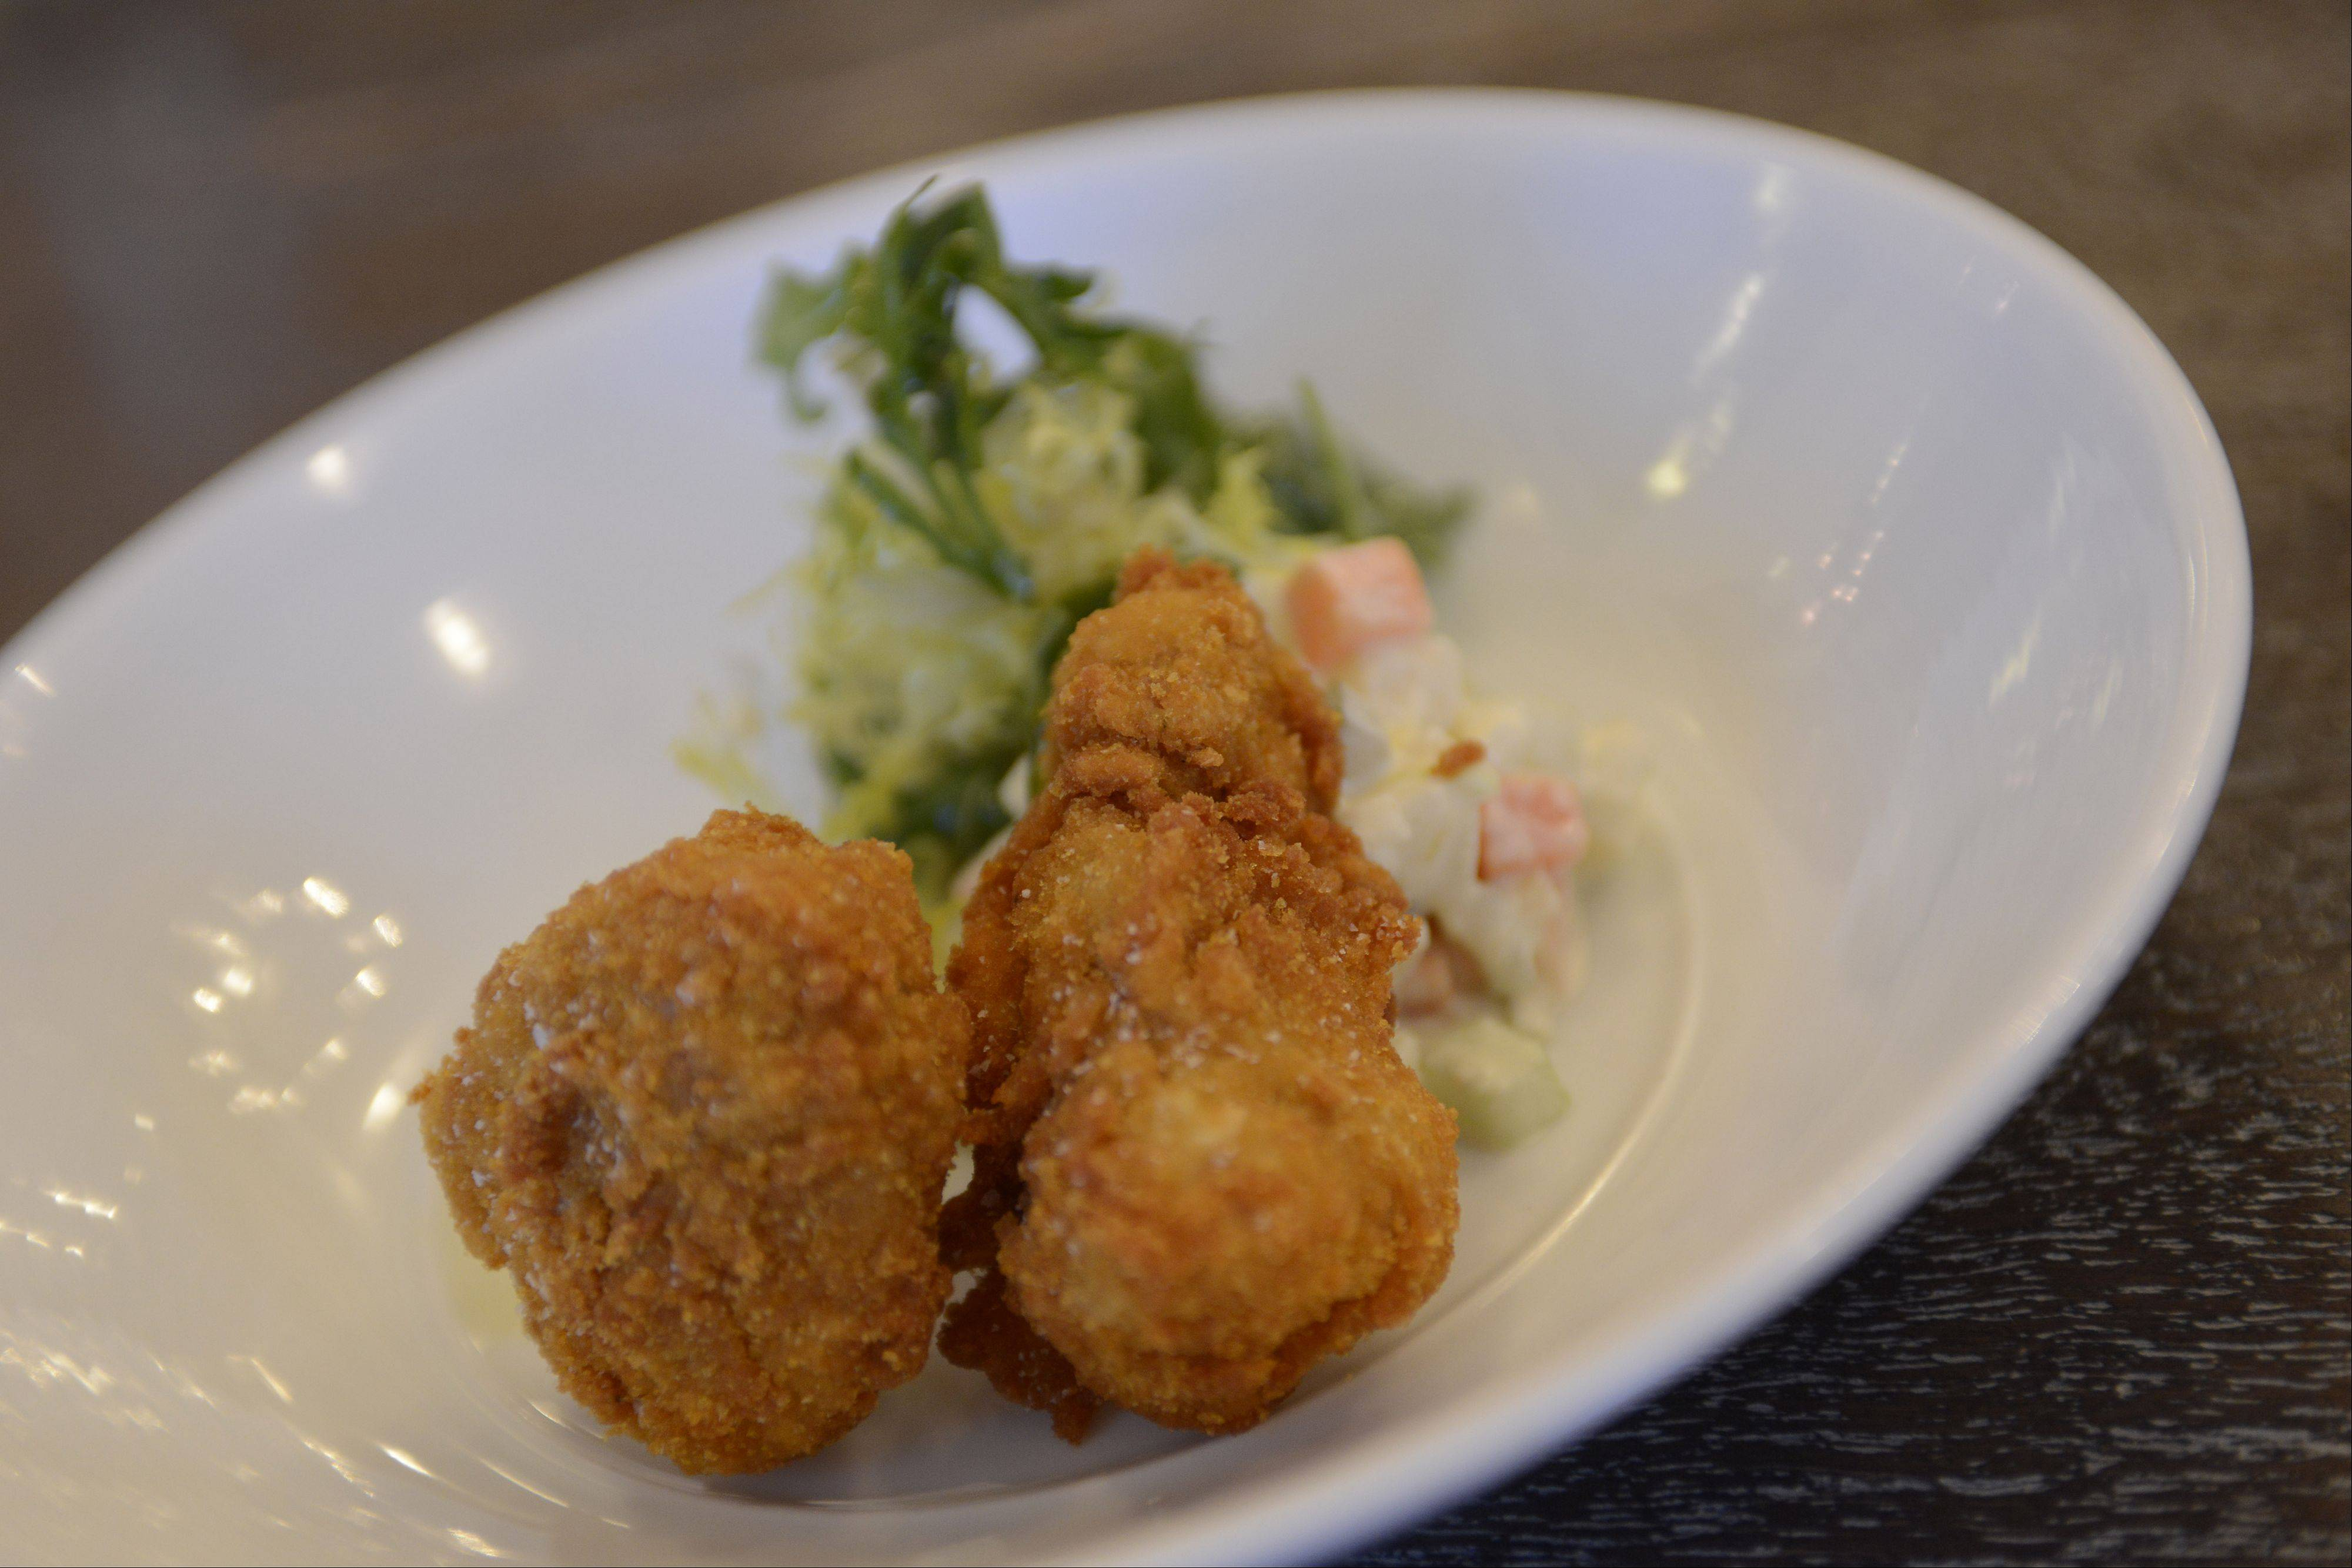 Sweetbreads get a crispy breading and are served with a frisee salad at Guildhall in Glencoe.